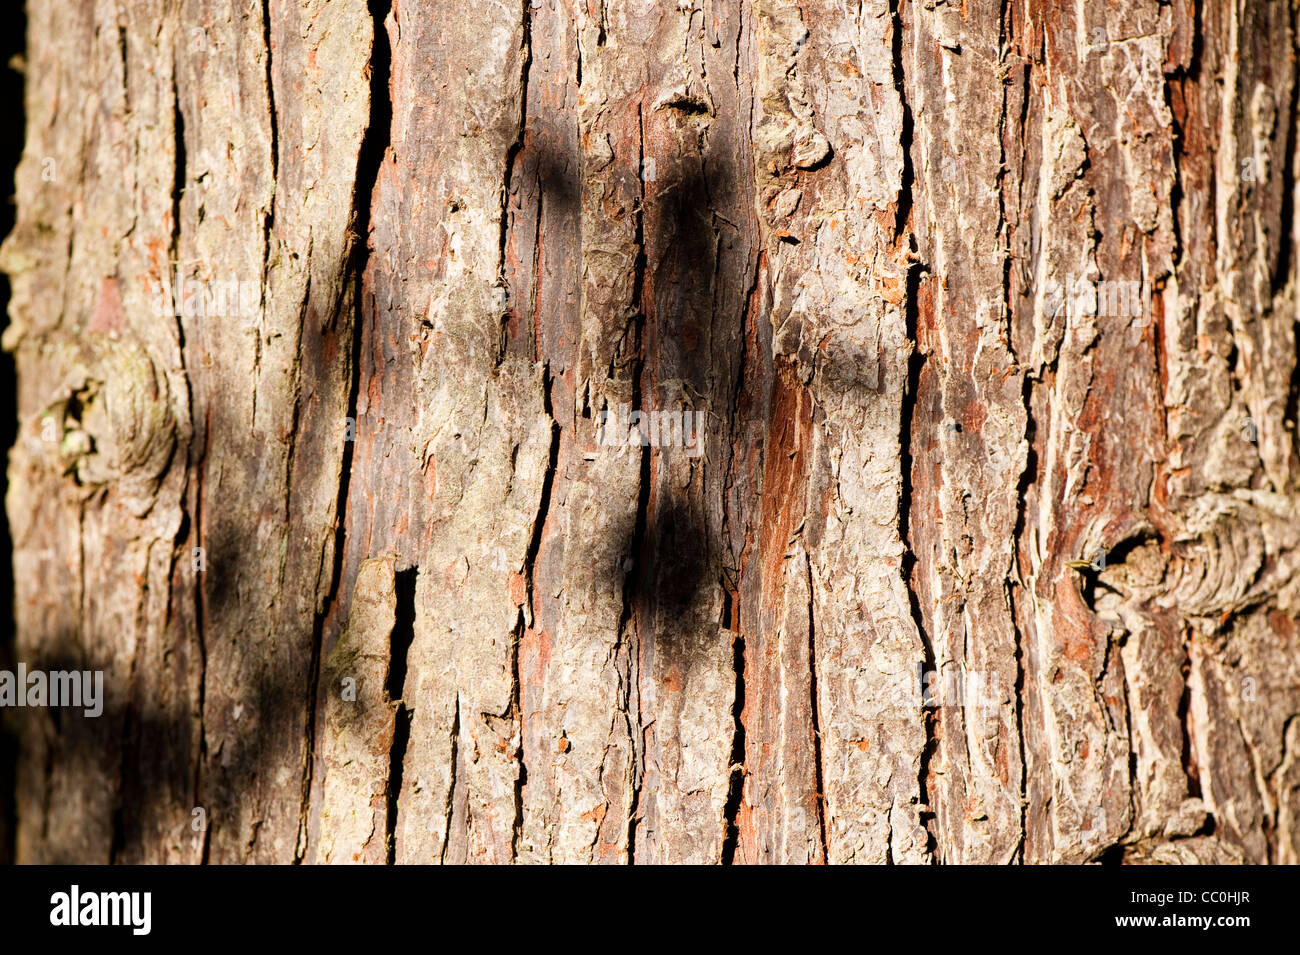 Bark of a Chamaecyparis lawsoniana, Lawson Cypress, tree - Stock Image